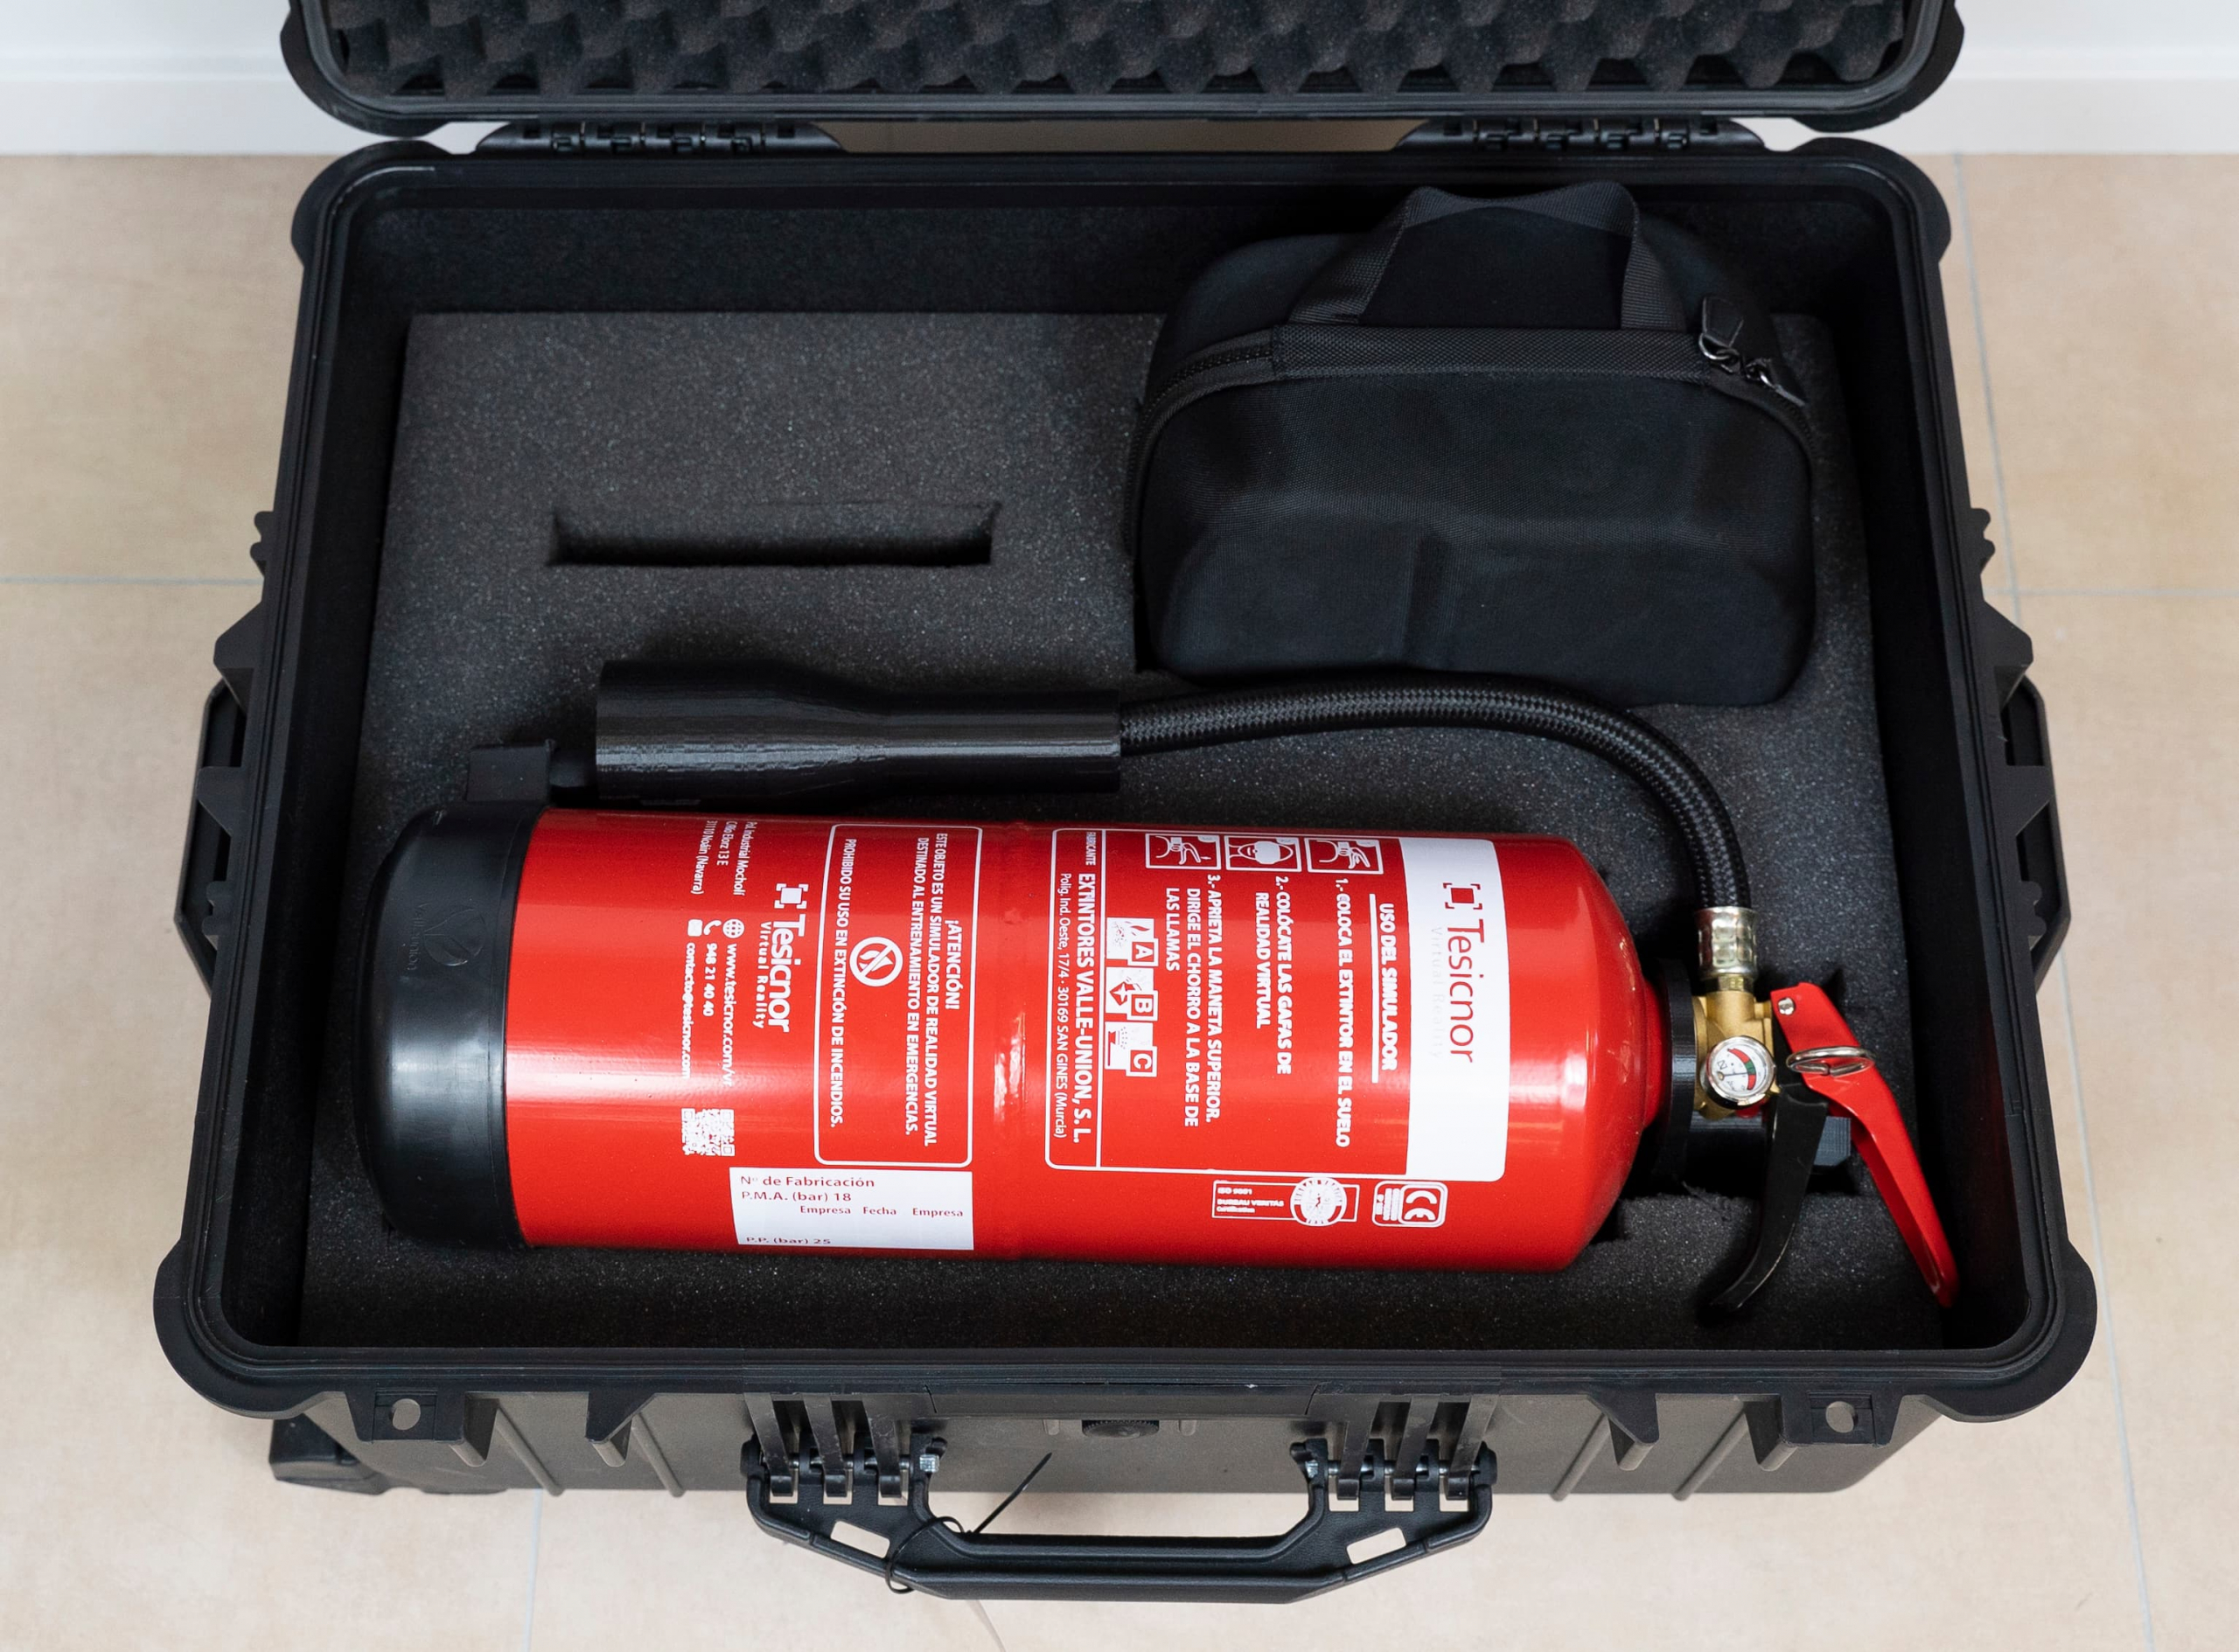 fire extinguisher VR luggage